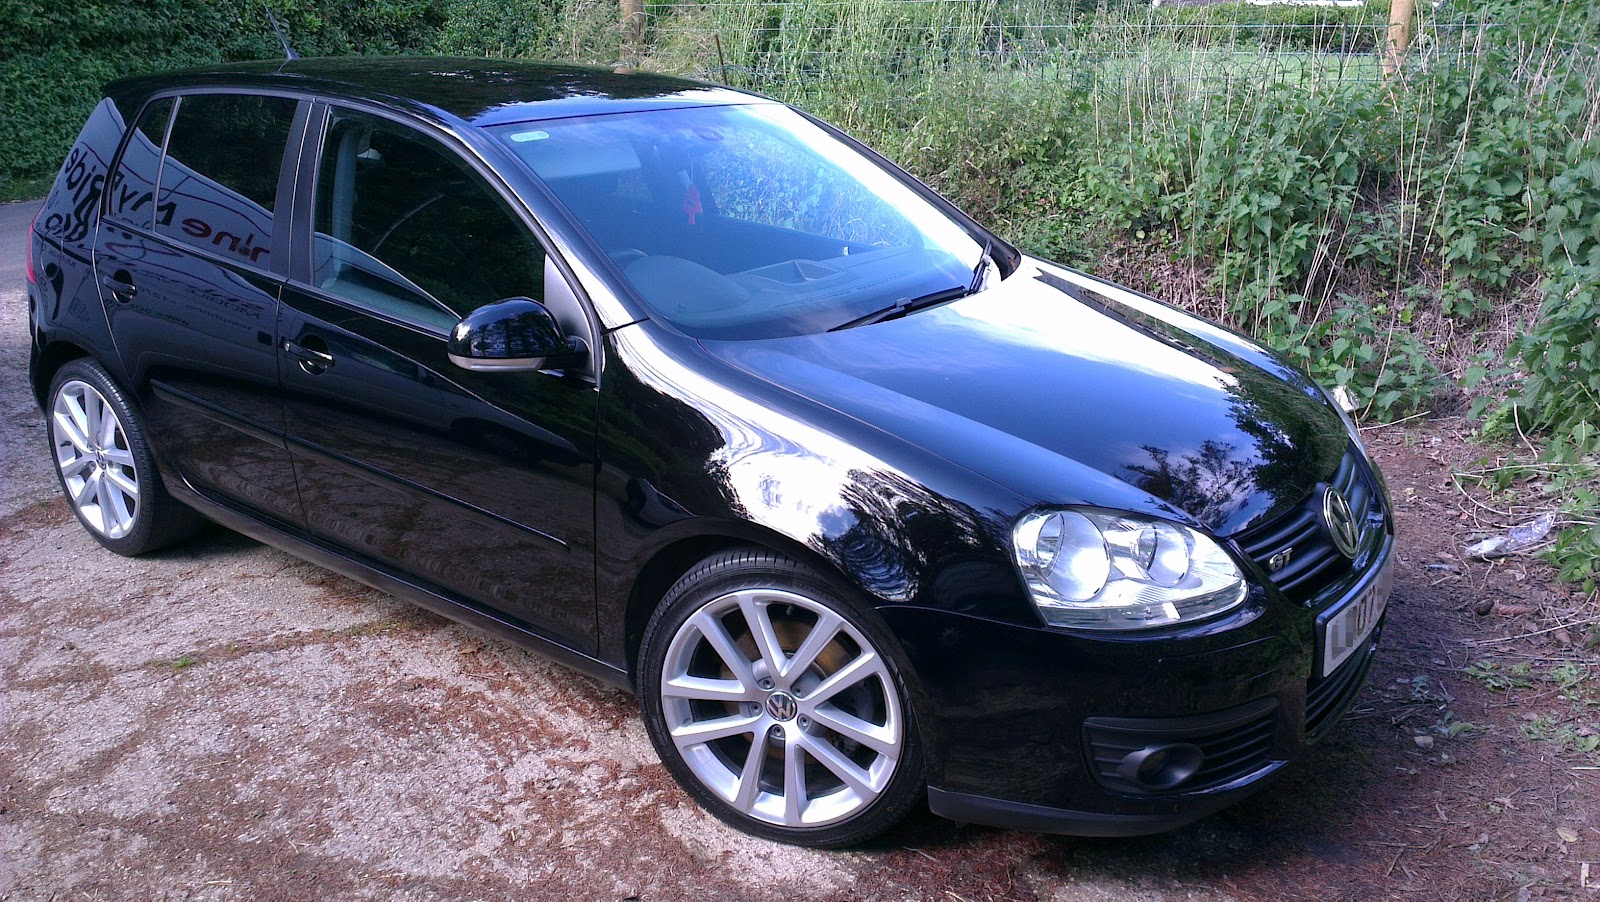 shine my ride mobile car valeting in somerset 2007 vw golf gt tdi 170 exterior pre sale valet. Black Bedroom Furniture Sets. Home Design Ideas